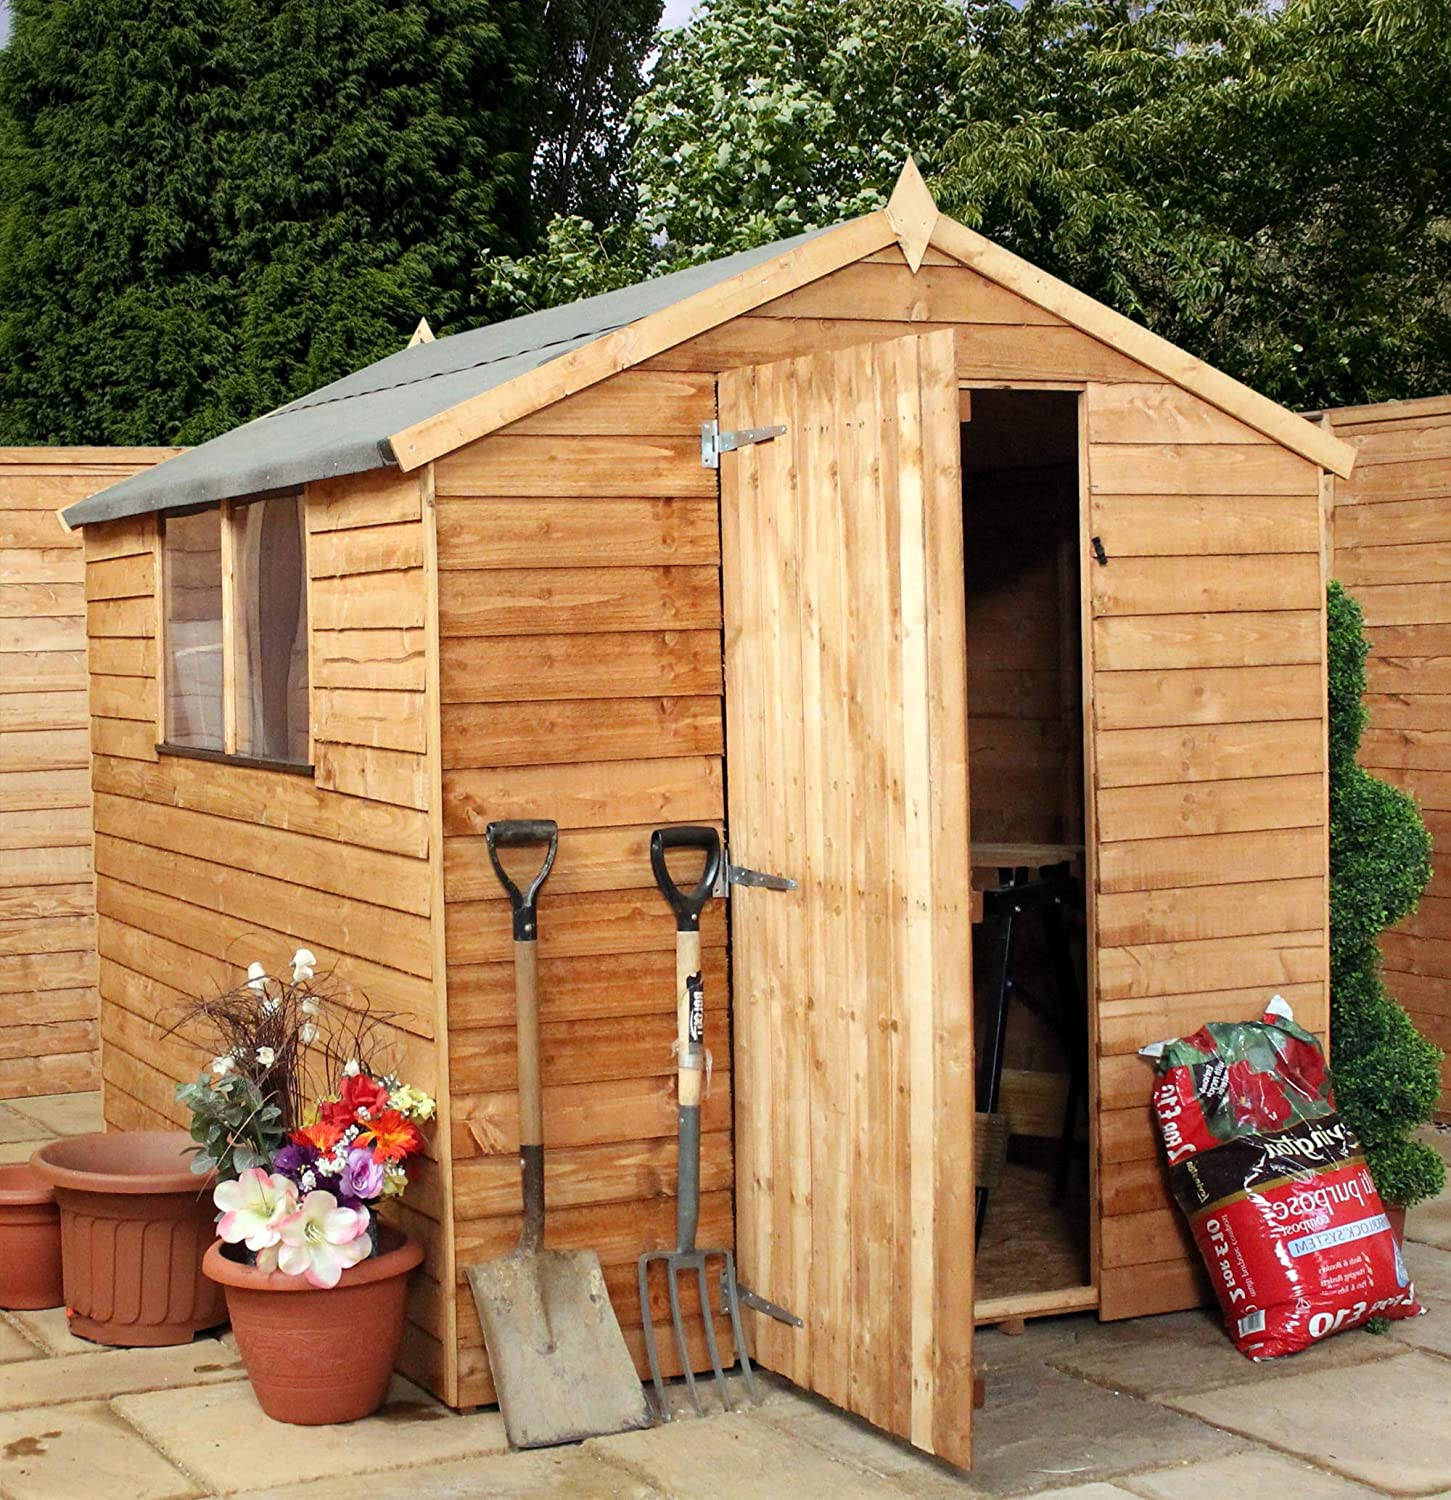 waltons 8 x 6 feet overlap apex wooden garden shed with windows amazonco uk garden outdoors - Garden Sheds With Windows